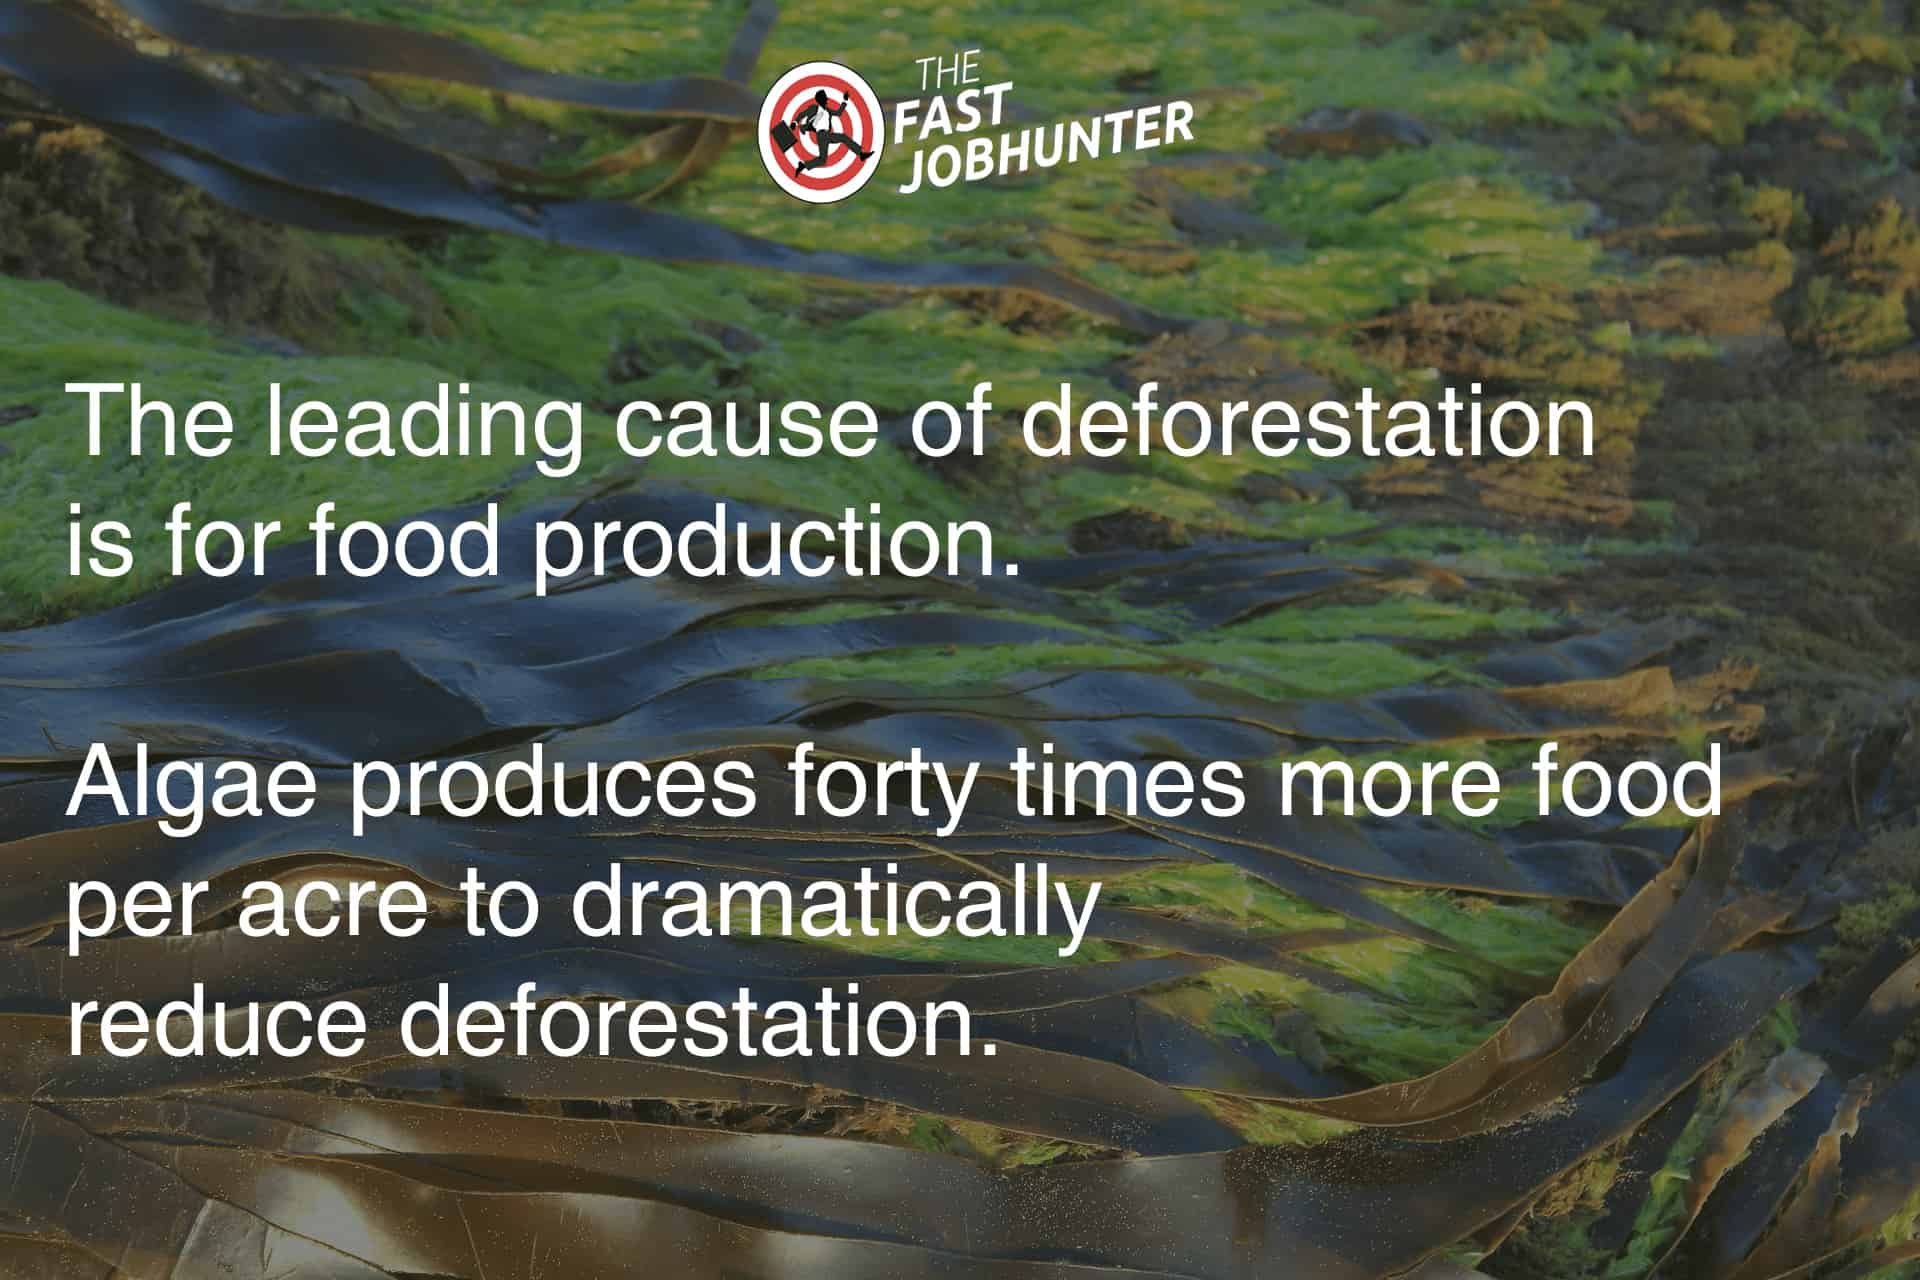 The Leading Cause of Deforastation is Food Production